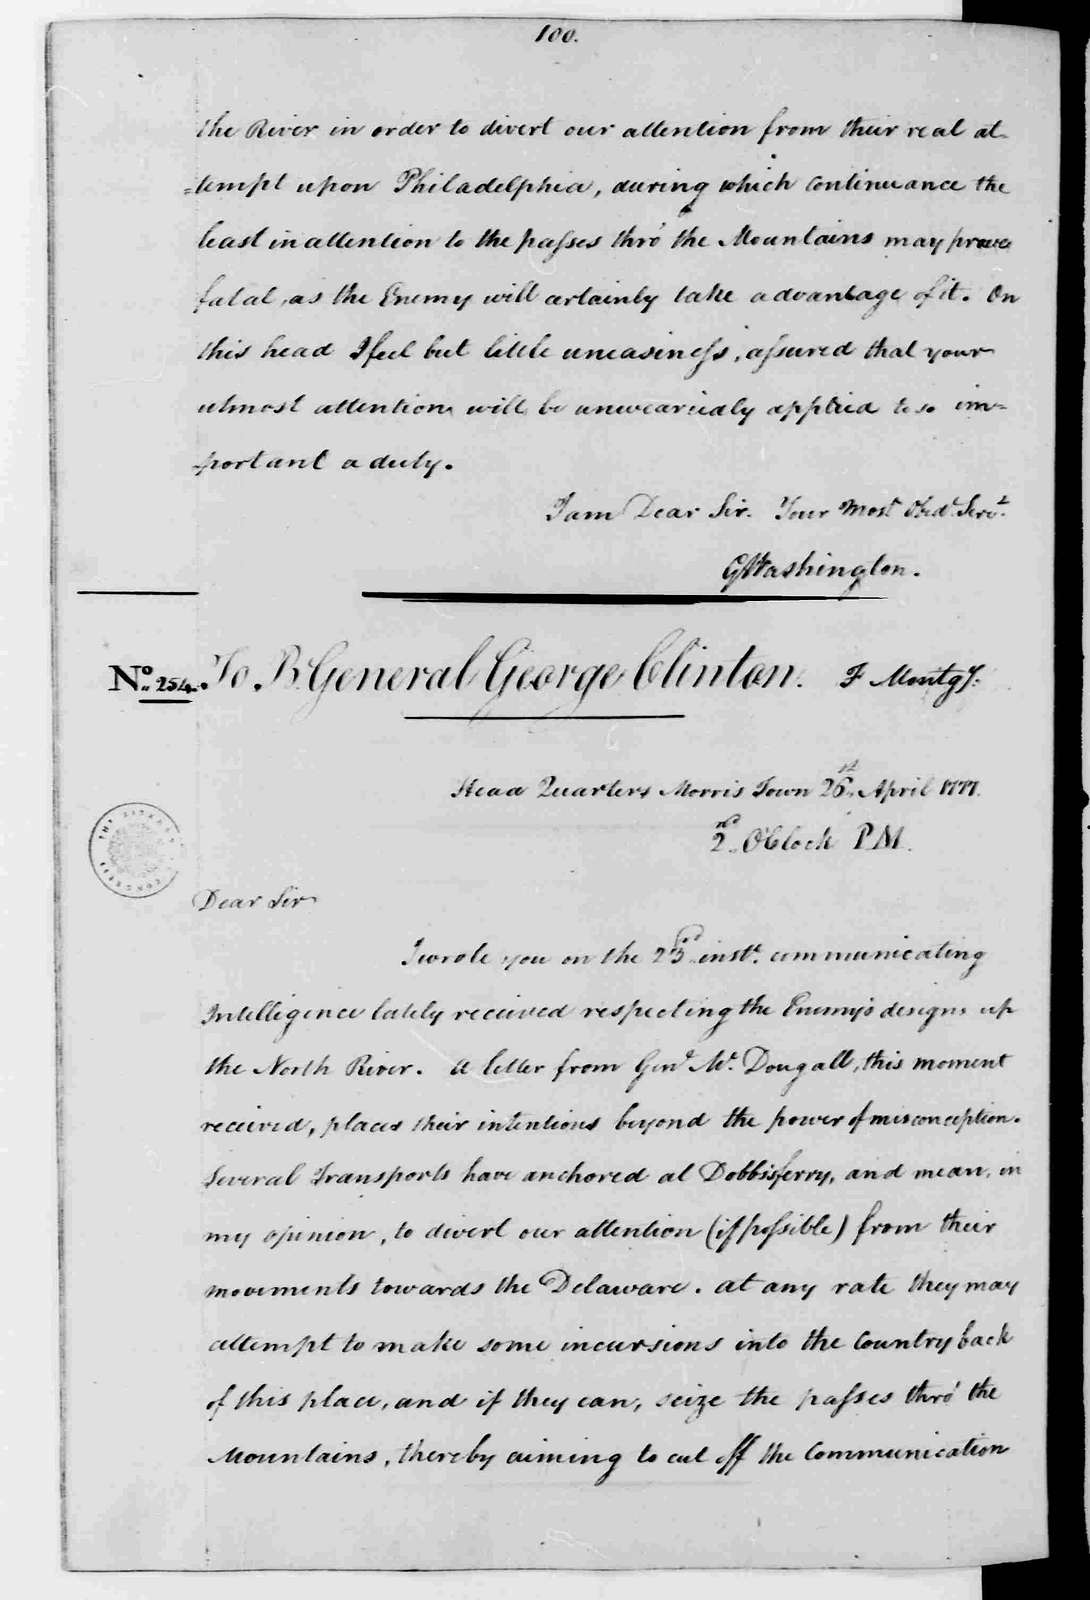 George Washington Papers, Series 3, Varick Transcripts, 1775-1785, Subseries 3B, Continental and State Military Personnel, 1775-1783, Letterbook 3: March 30, 1777 - July 31, 1777